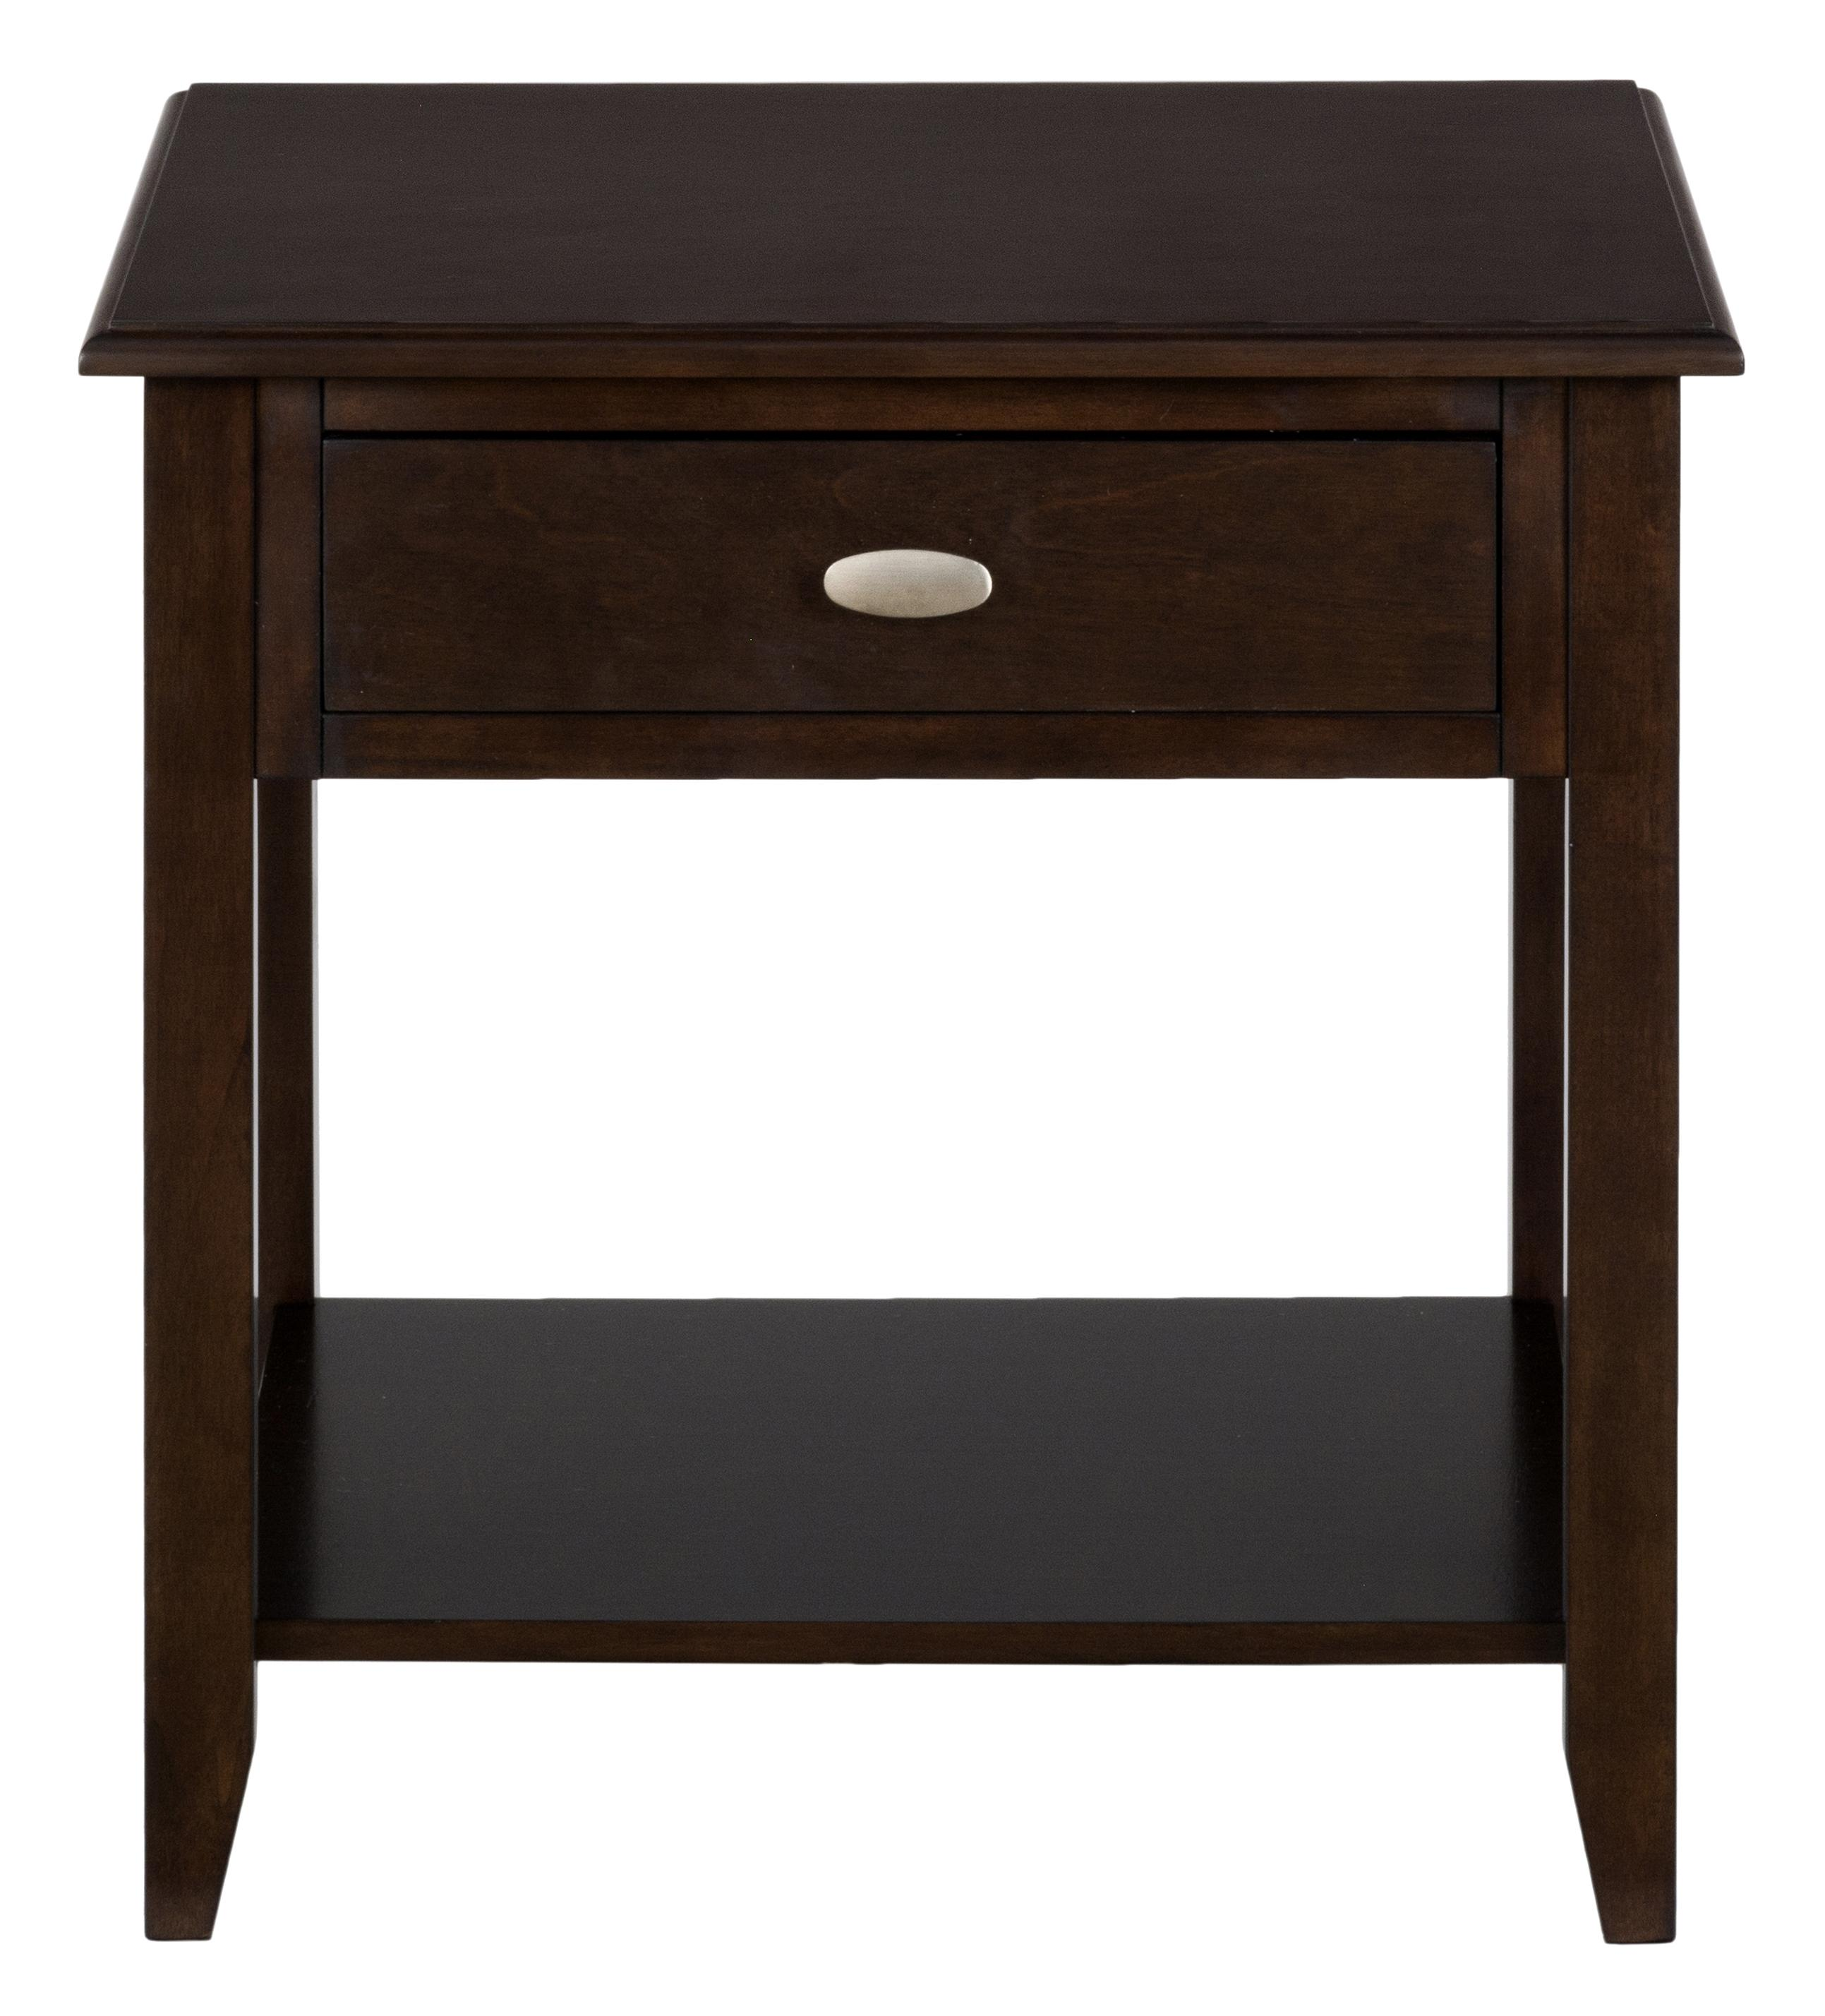 Merlot End Table by Jofran at Value City Furniture